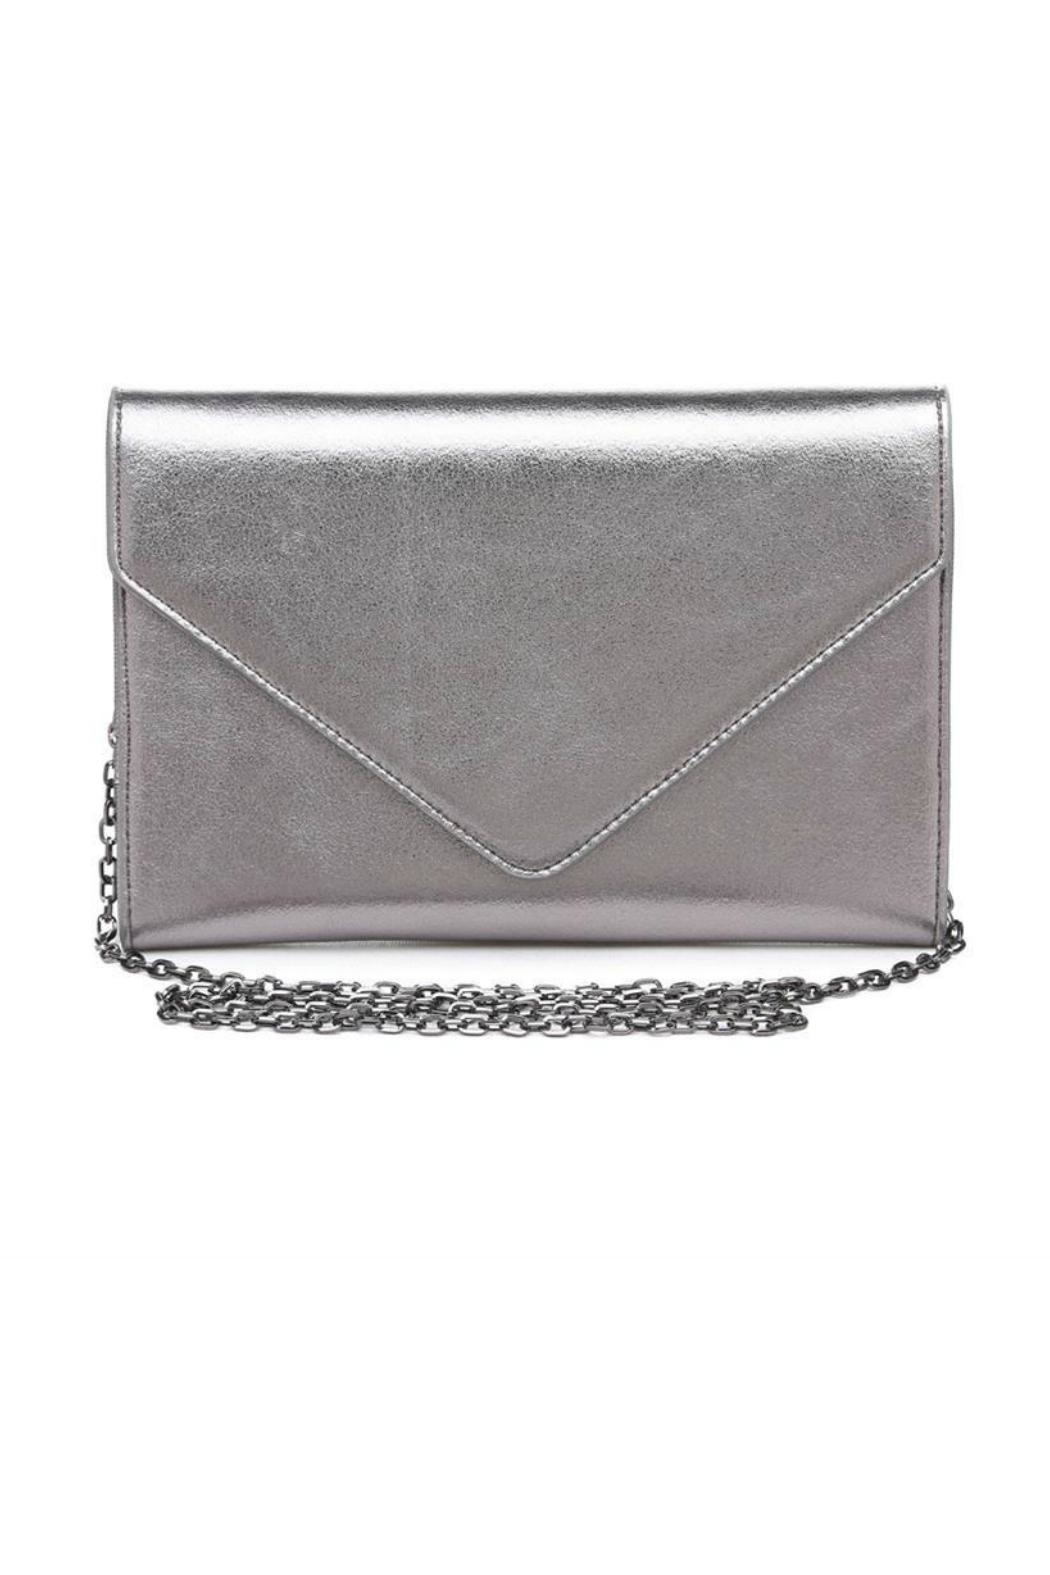 Urban Expressions Daze Envelope Clutch - Main Image